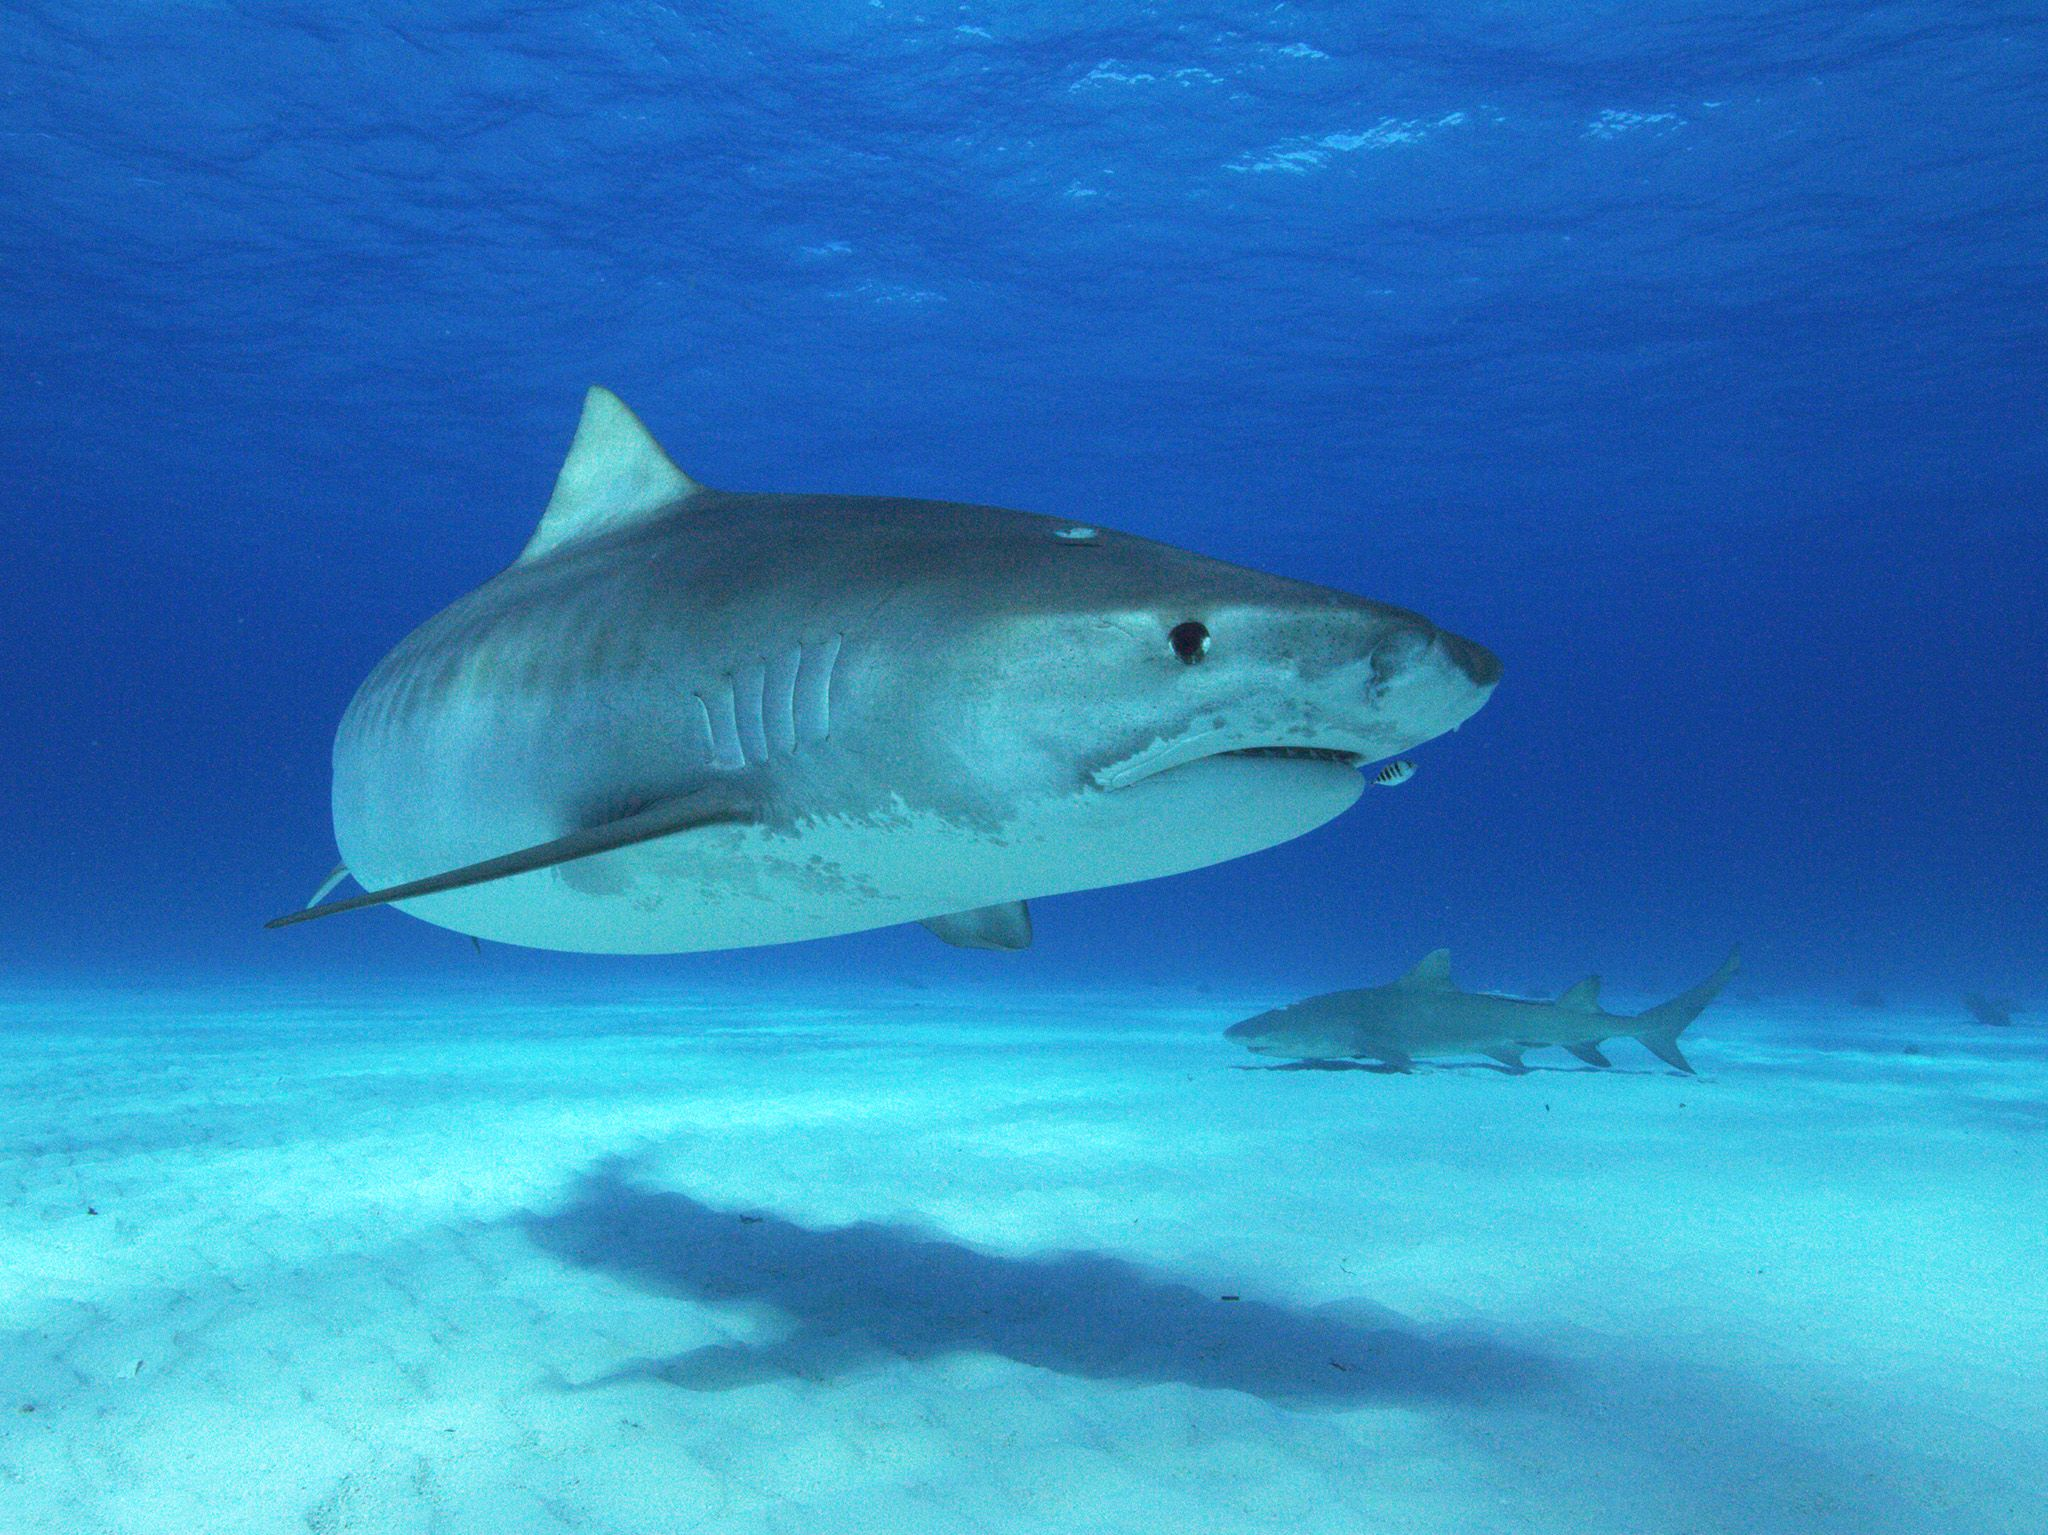 Tiger shark close to camera.  This image is from Forecast Shark Attack. [Photo of the day - ژولیه 2019]